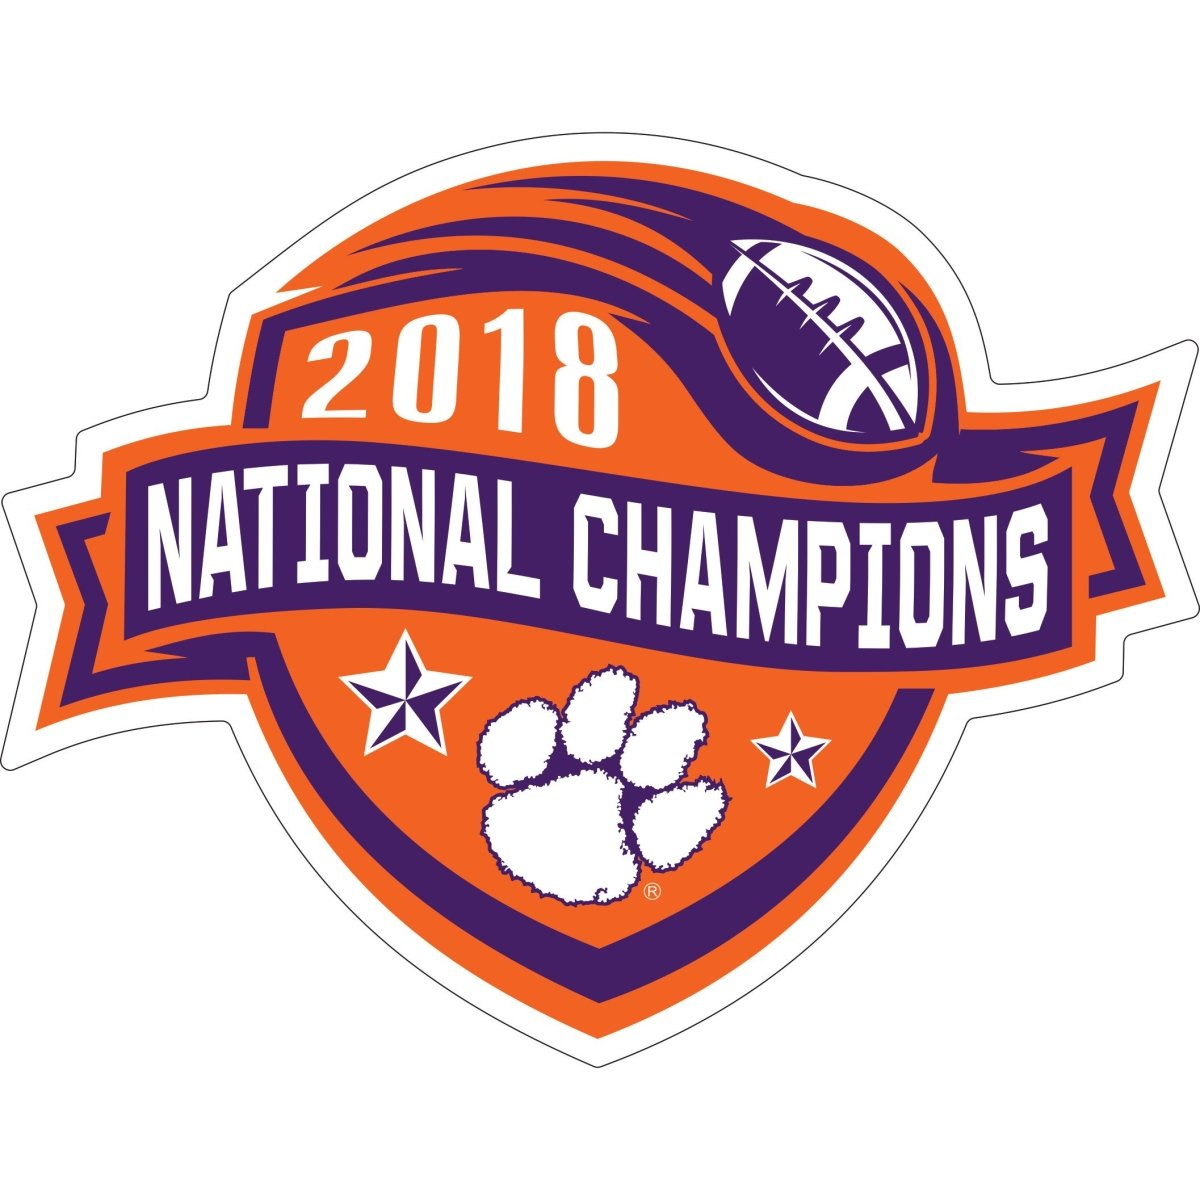 2018 National Champions Ribbon 4''x 6'' Decal - Mr. Knickerbocker